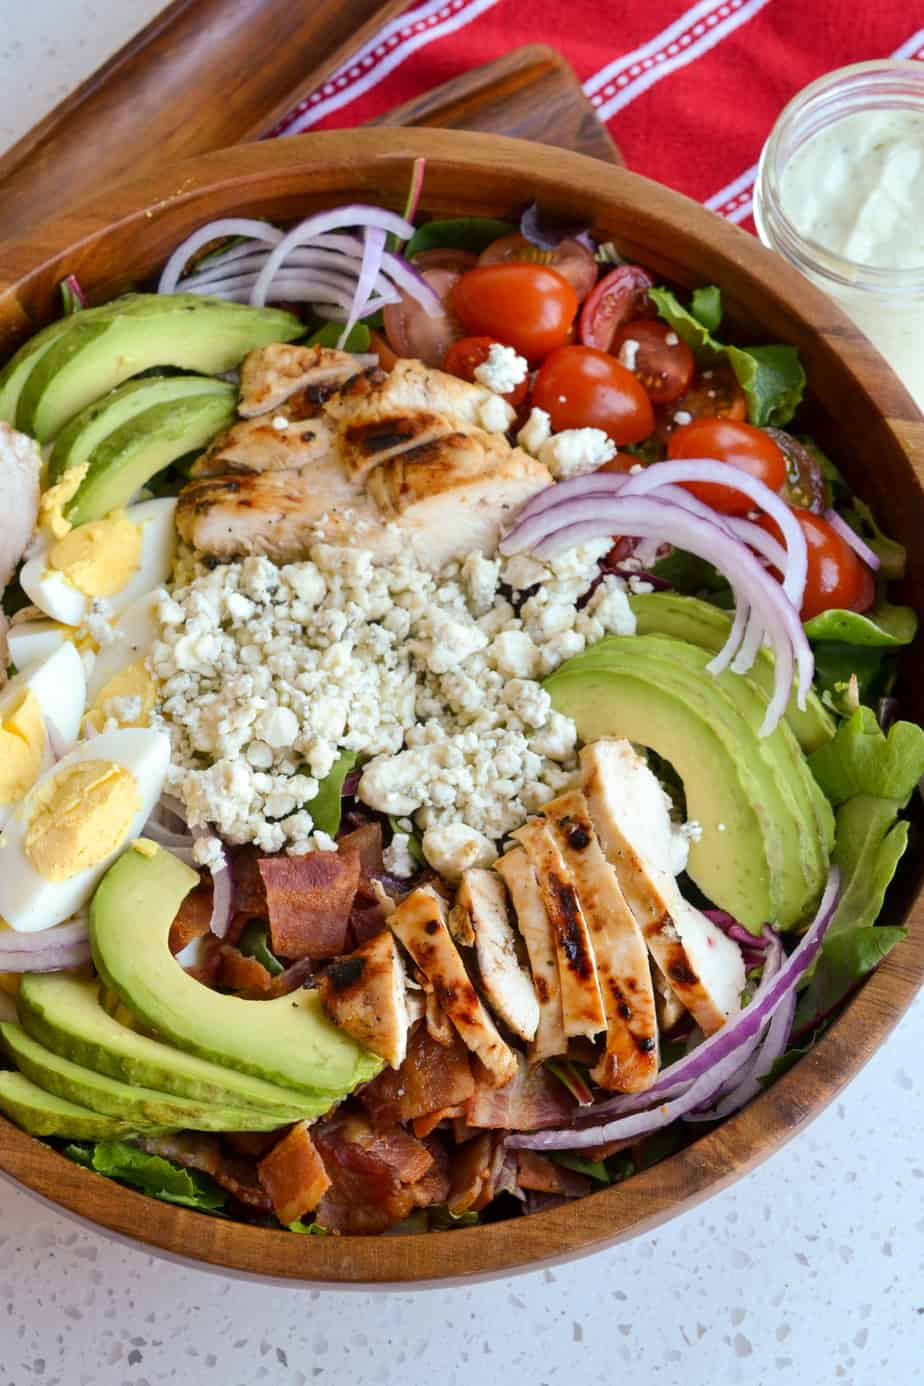 A salad bowl filled with greens, chicken, bacon, tomatoes, eggs, and avocado.